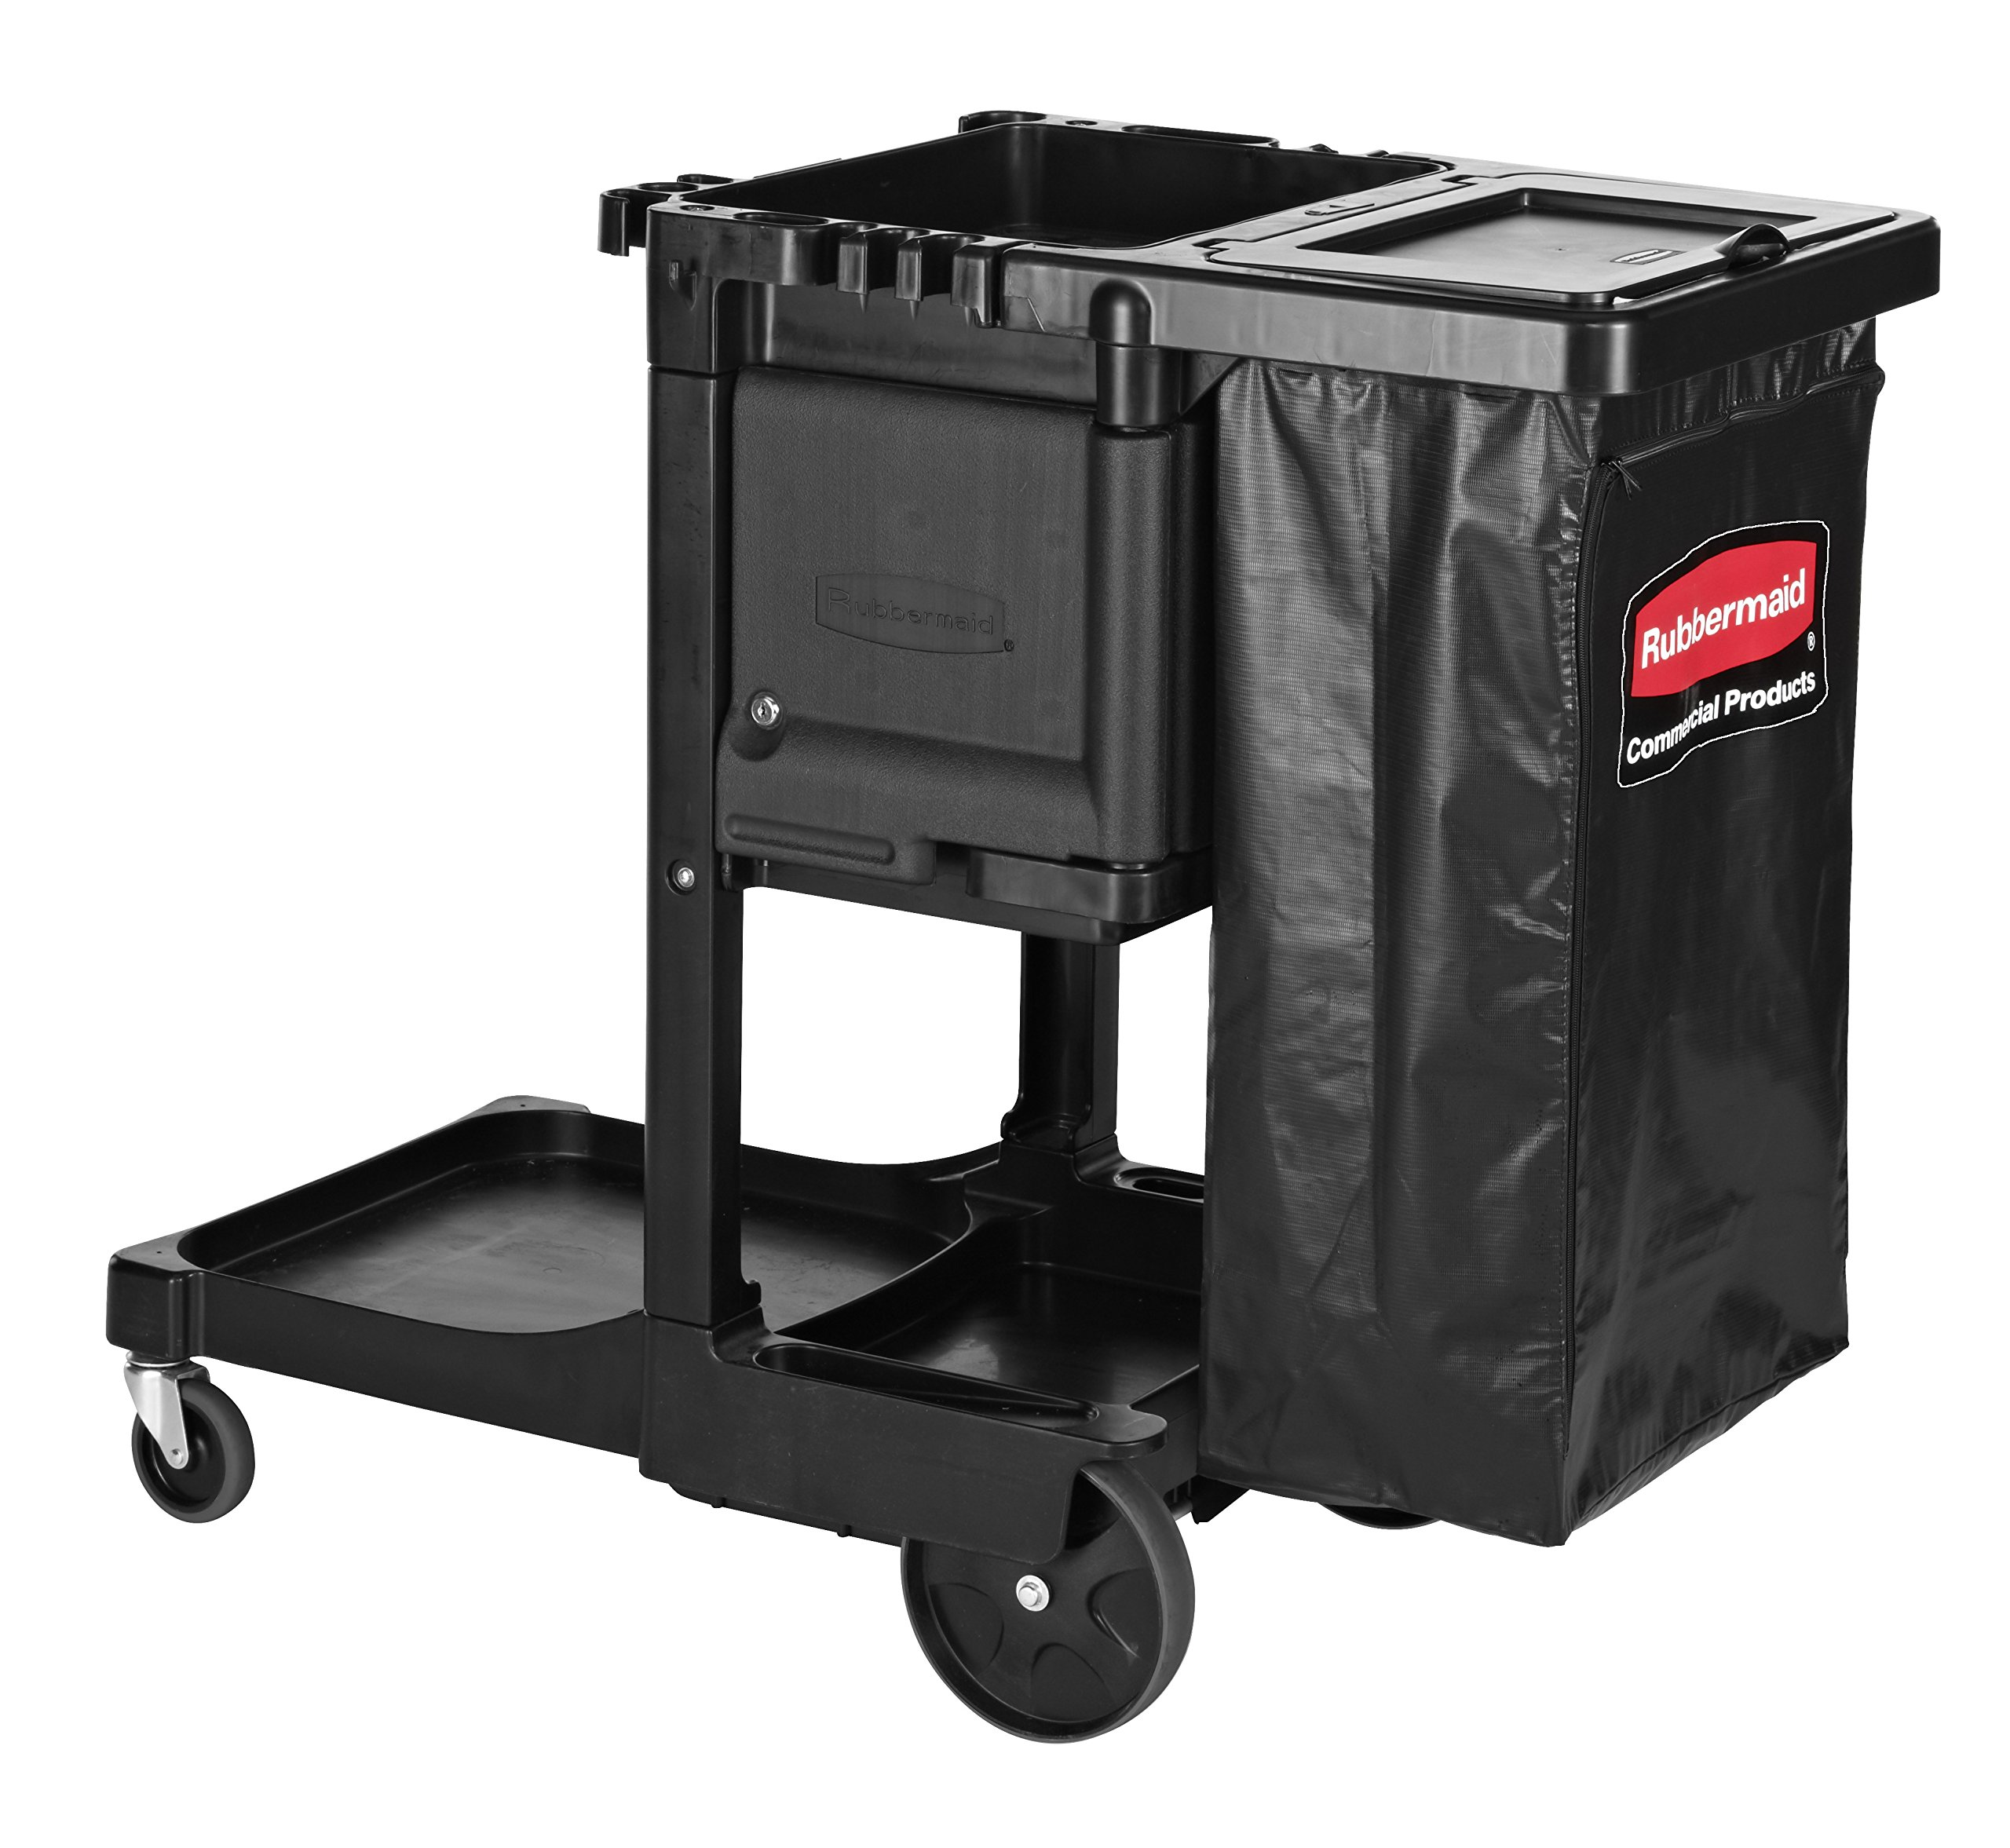 RubbermaidC ommercial Executive Series Housekeeping Cart, Black (1861430) by Rubbermaid Commercial Products